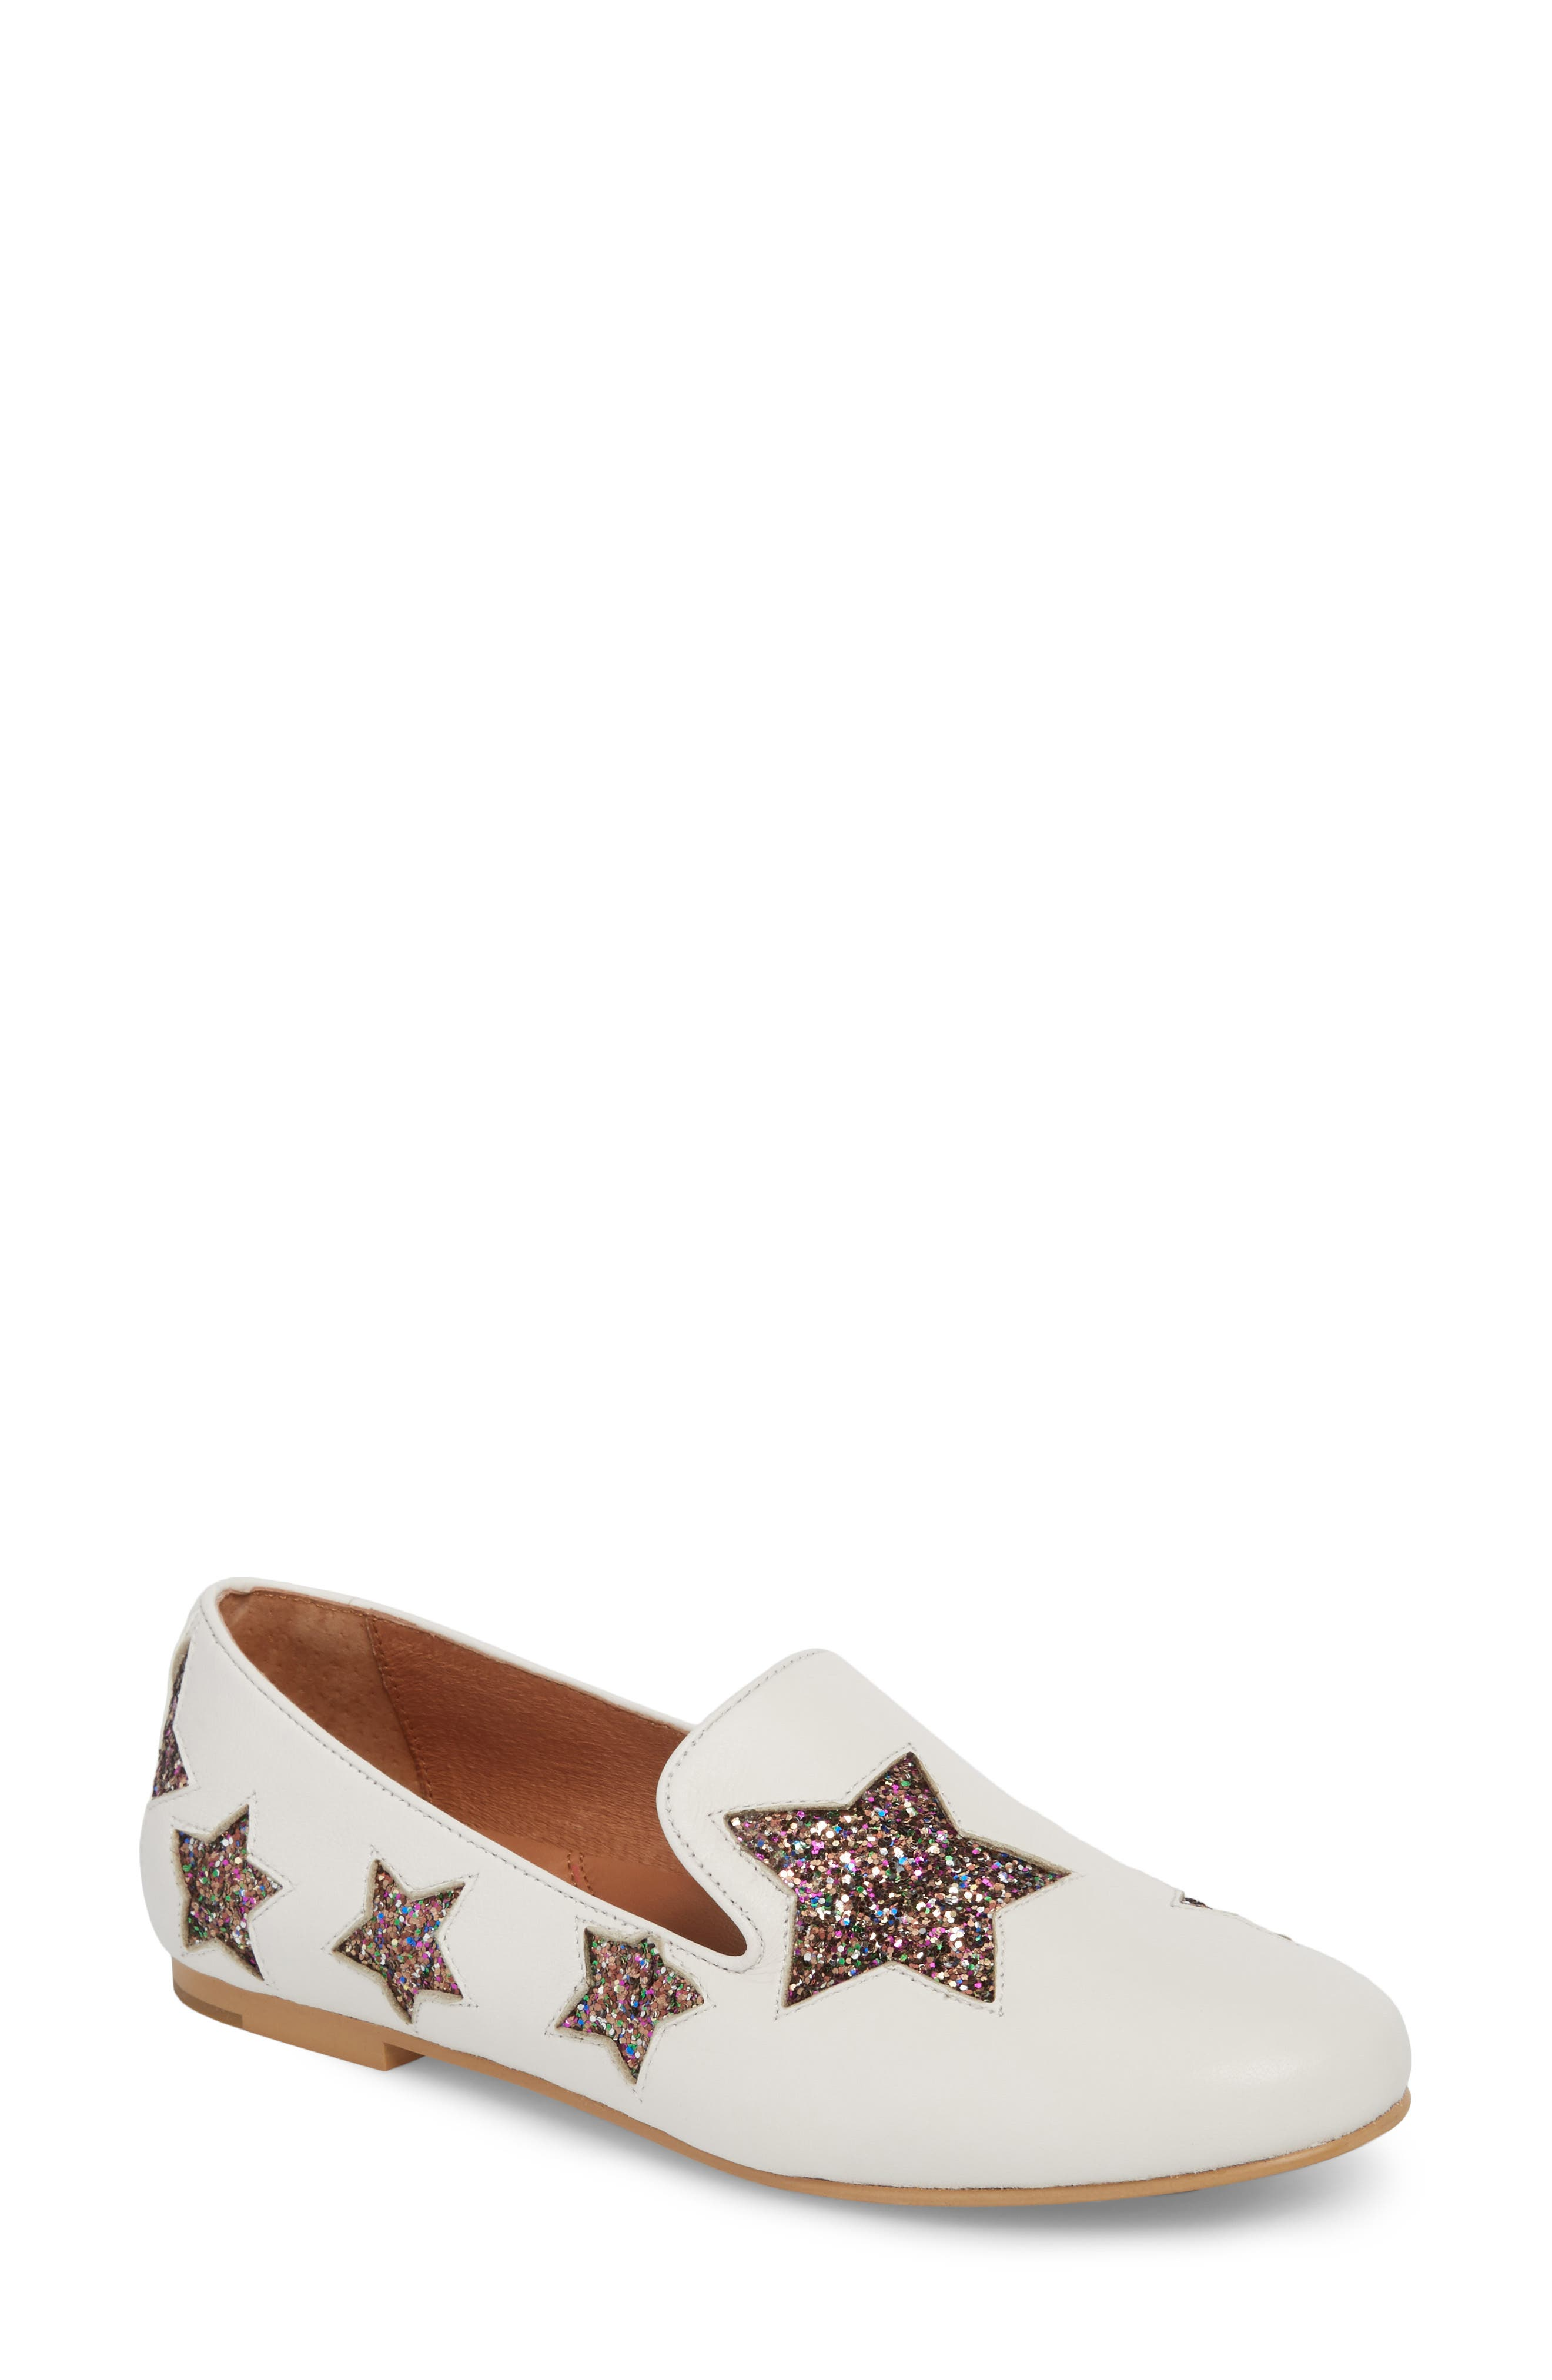 Eugene Stars Flat,                         Main,                         color, WHITE STARS LEATHER